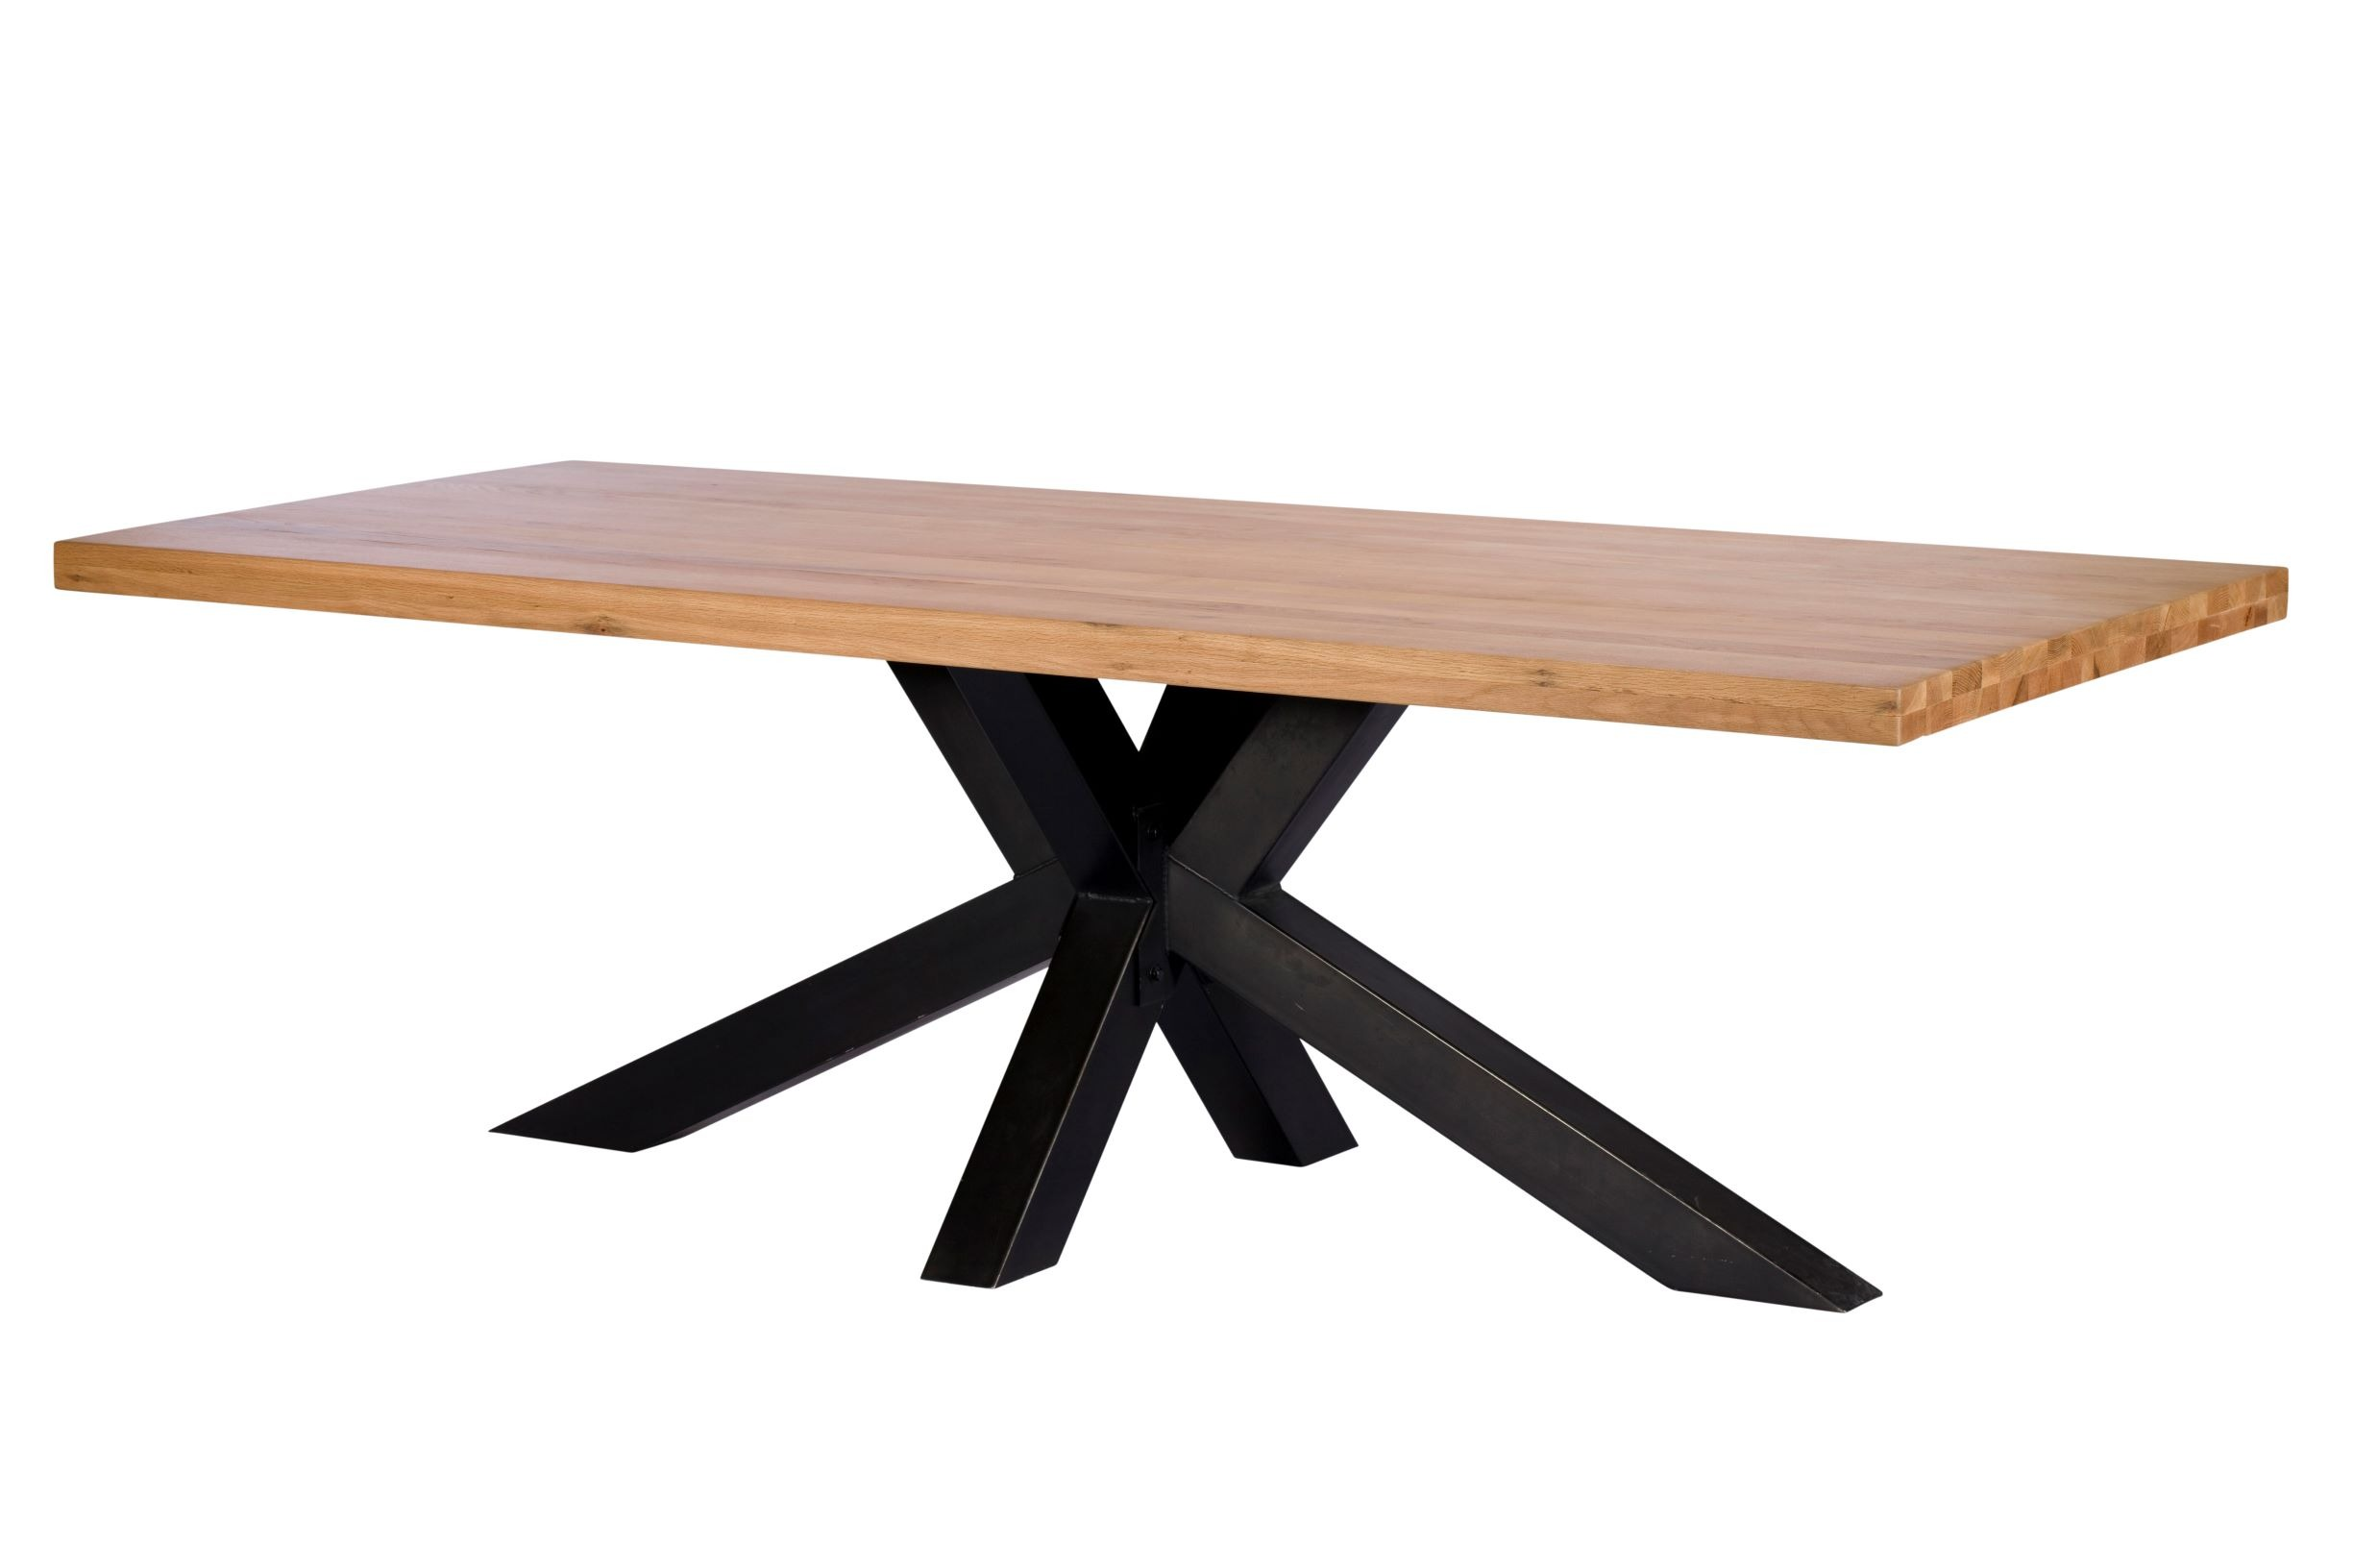 HAMBURG LARGE DINING TABLE - L240cm x D100cm x H77cm